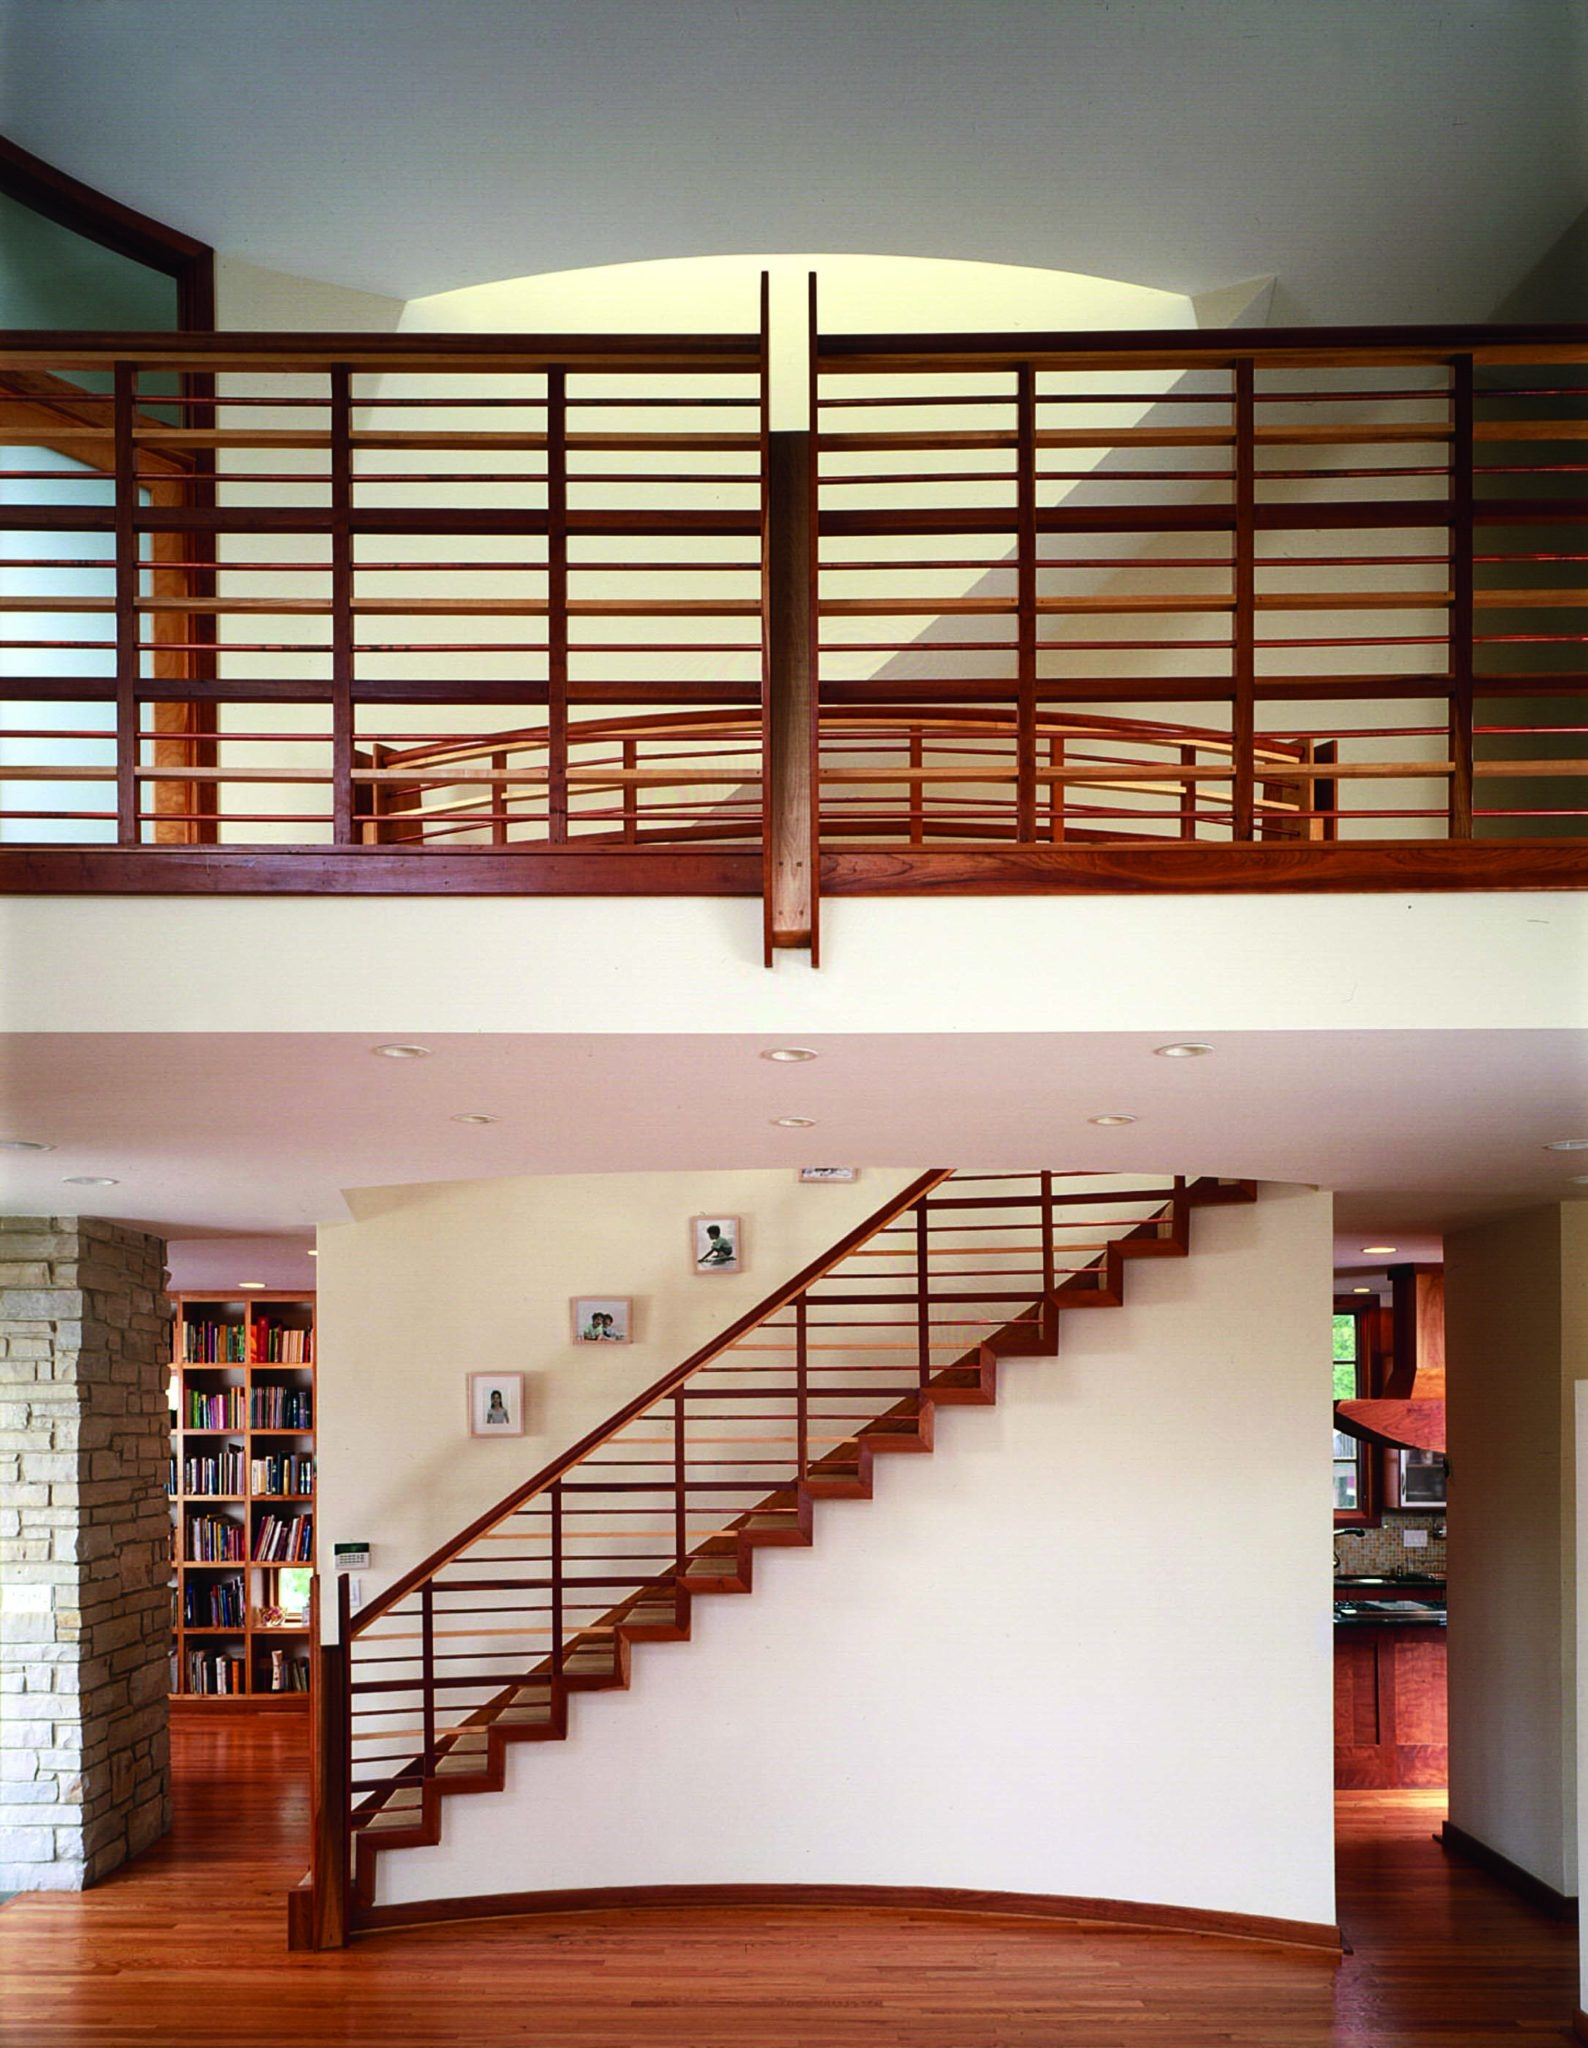 Unique Beautiful Banister Designs Chairish Blog   Staircase Handrail Wood Design   Wooden Balustrade   Modern   3 Story House   Internal Staircase Railing   Railing Colour